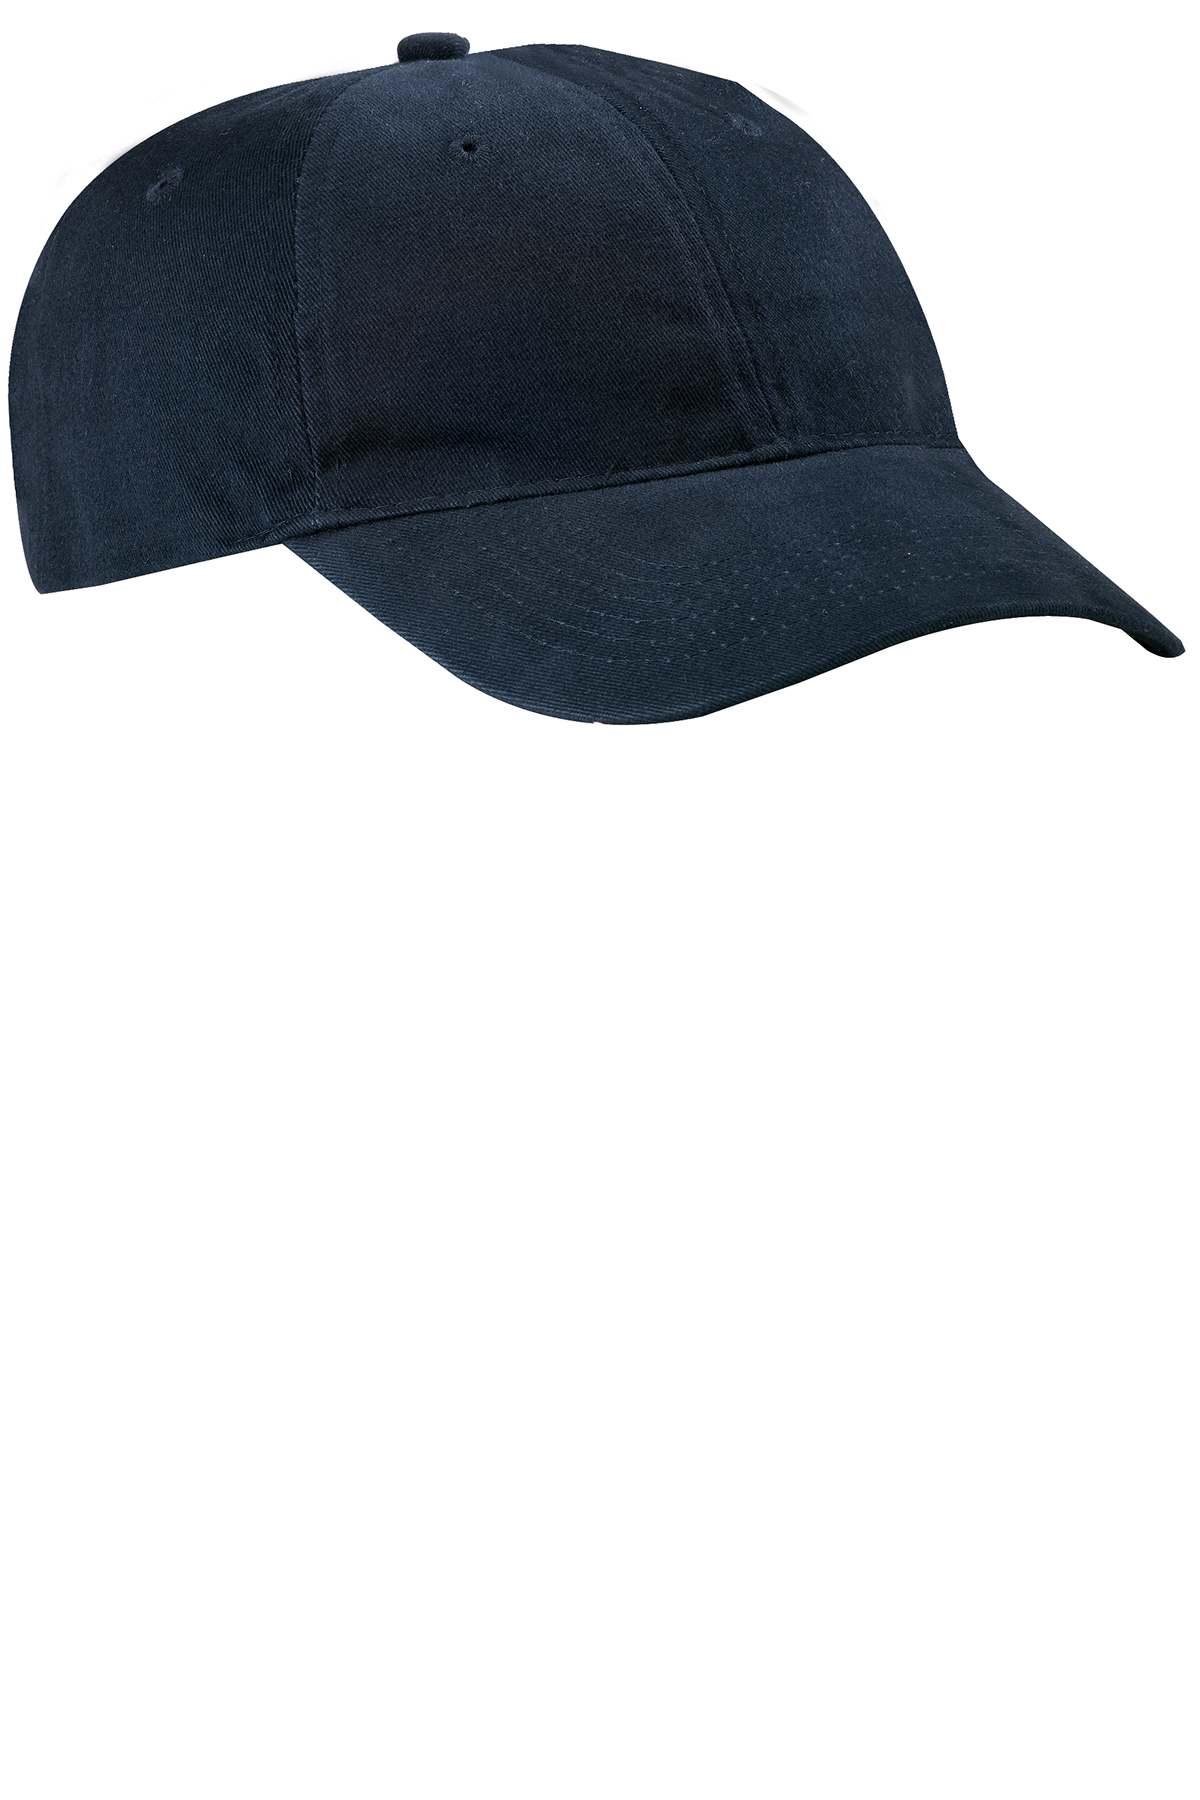 8b23d62bbe1 Port   Company® - Brushed Twill Low Profile Cap